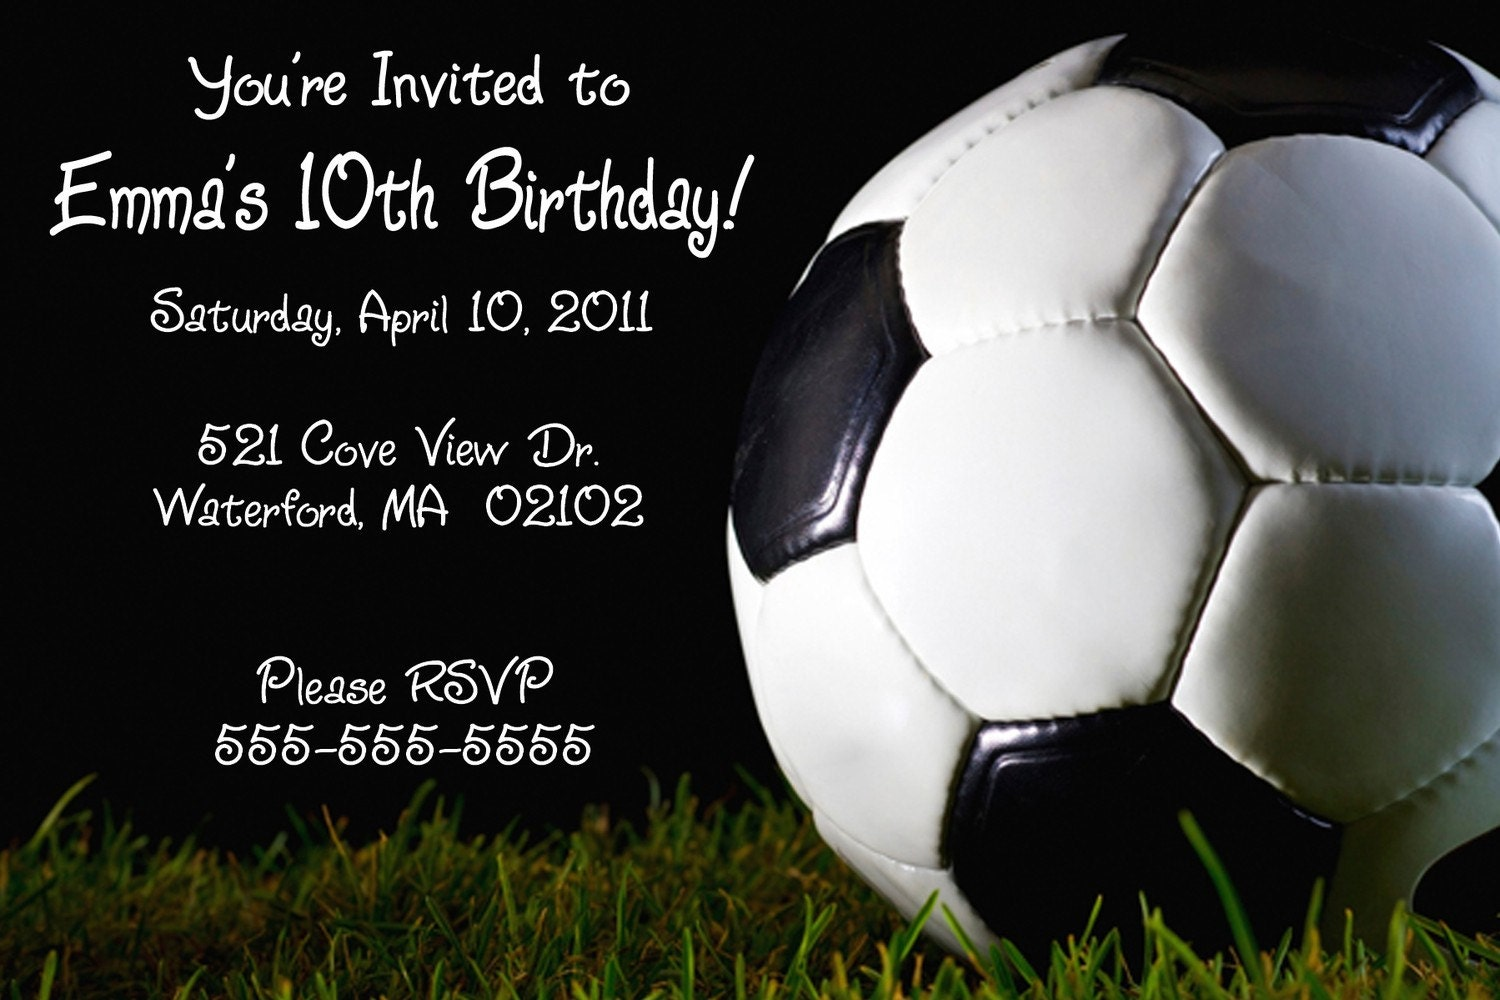 Dynamic image with regard to soccer invitations printable free